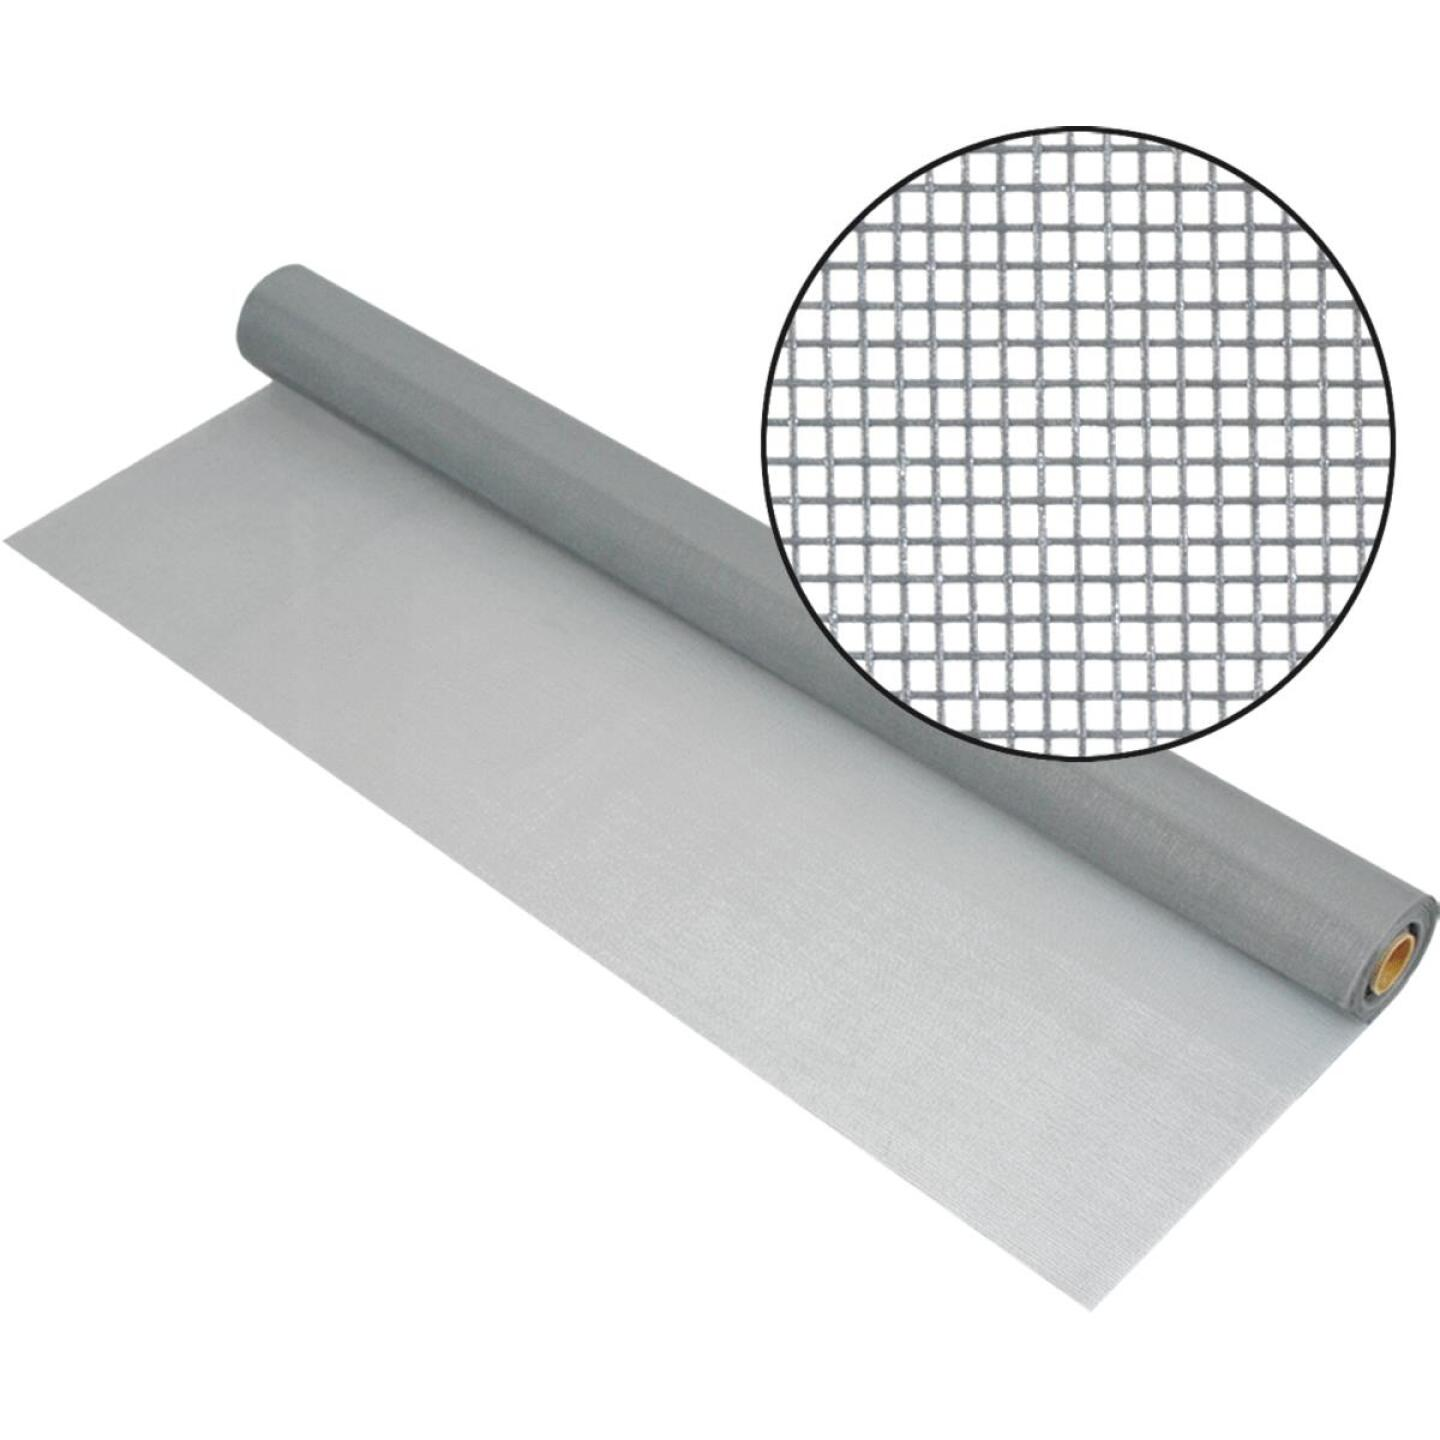 Phifer 24 In. x 100 Ft. Gray Fiberglass Mesh Screen Cloth Image 1